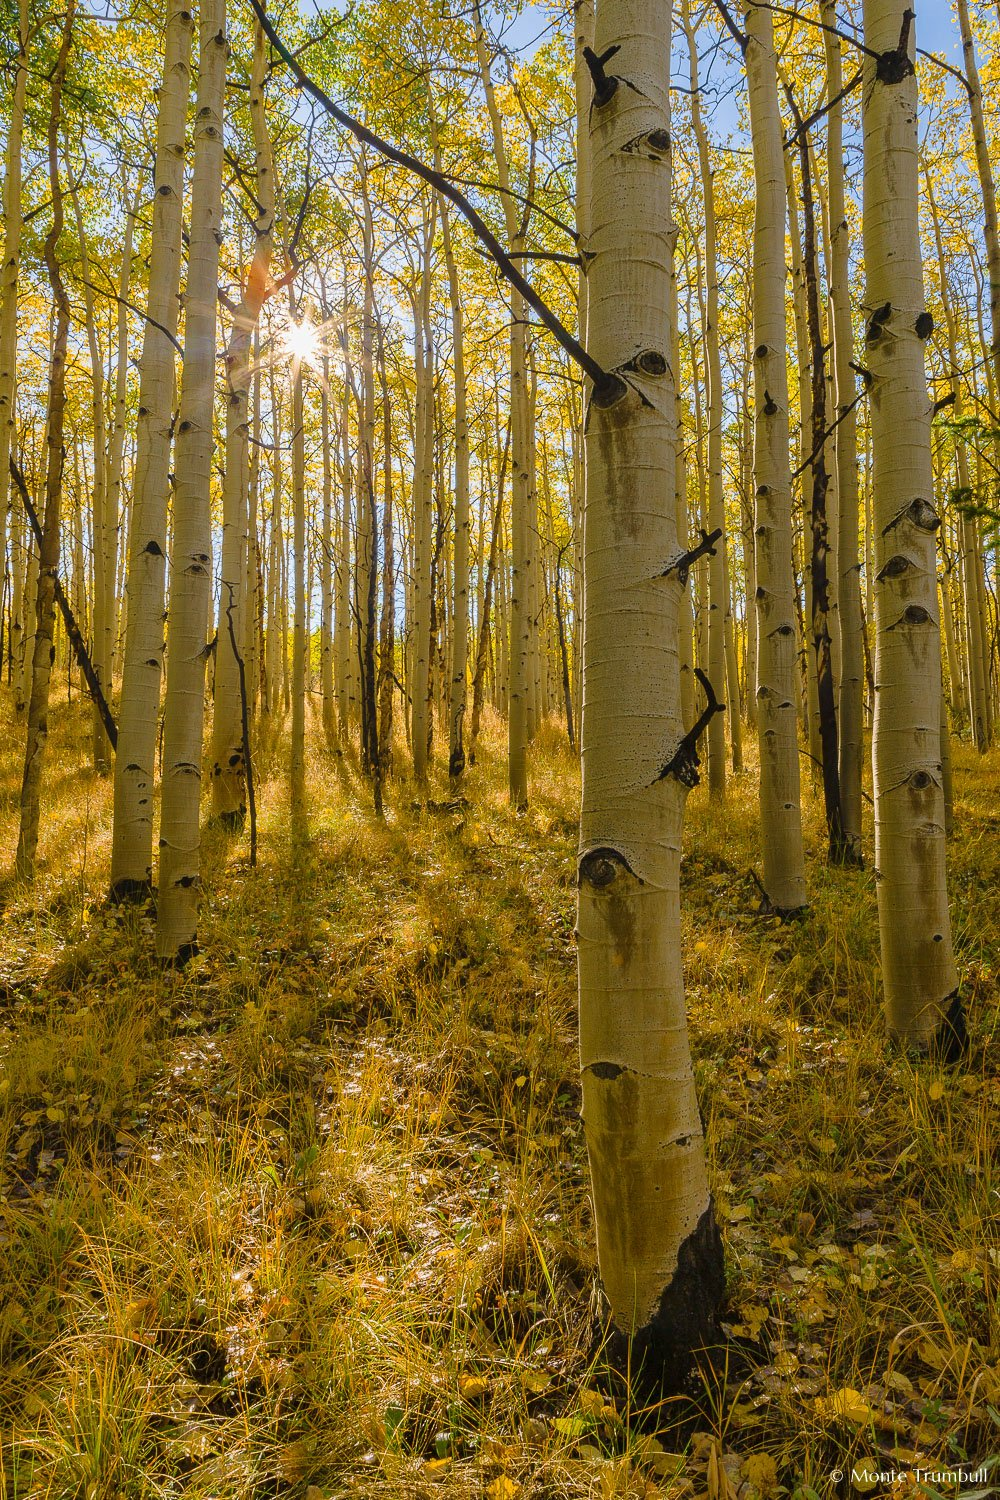 MT-20120913-092039-0001-Colorado-golden-aspens-sunburst.jpg